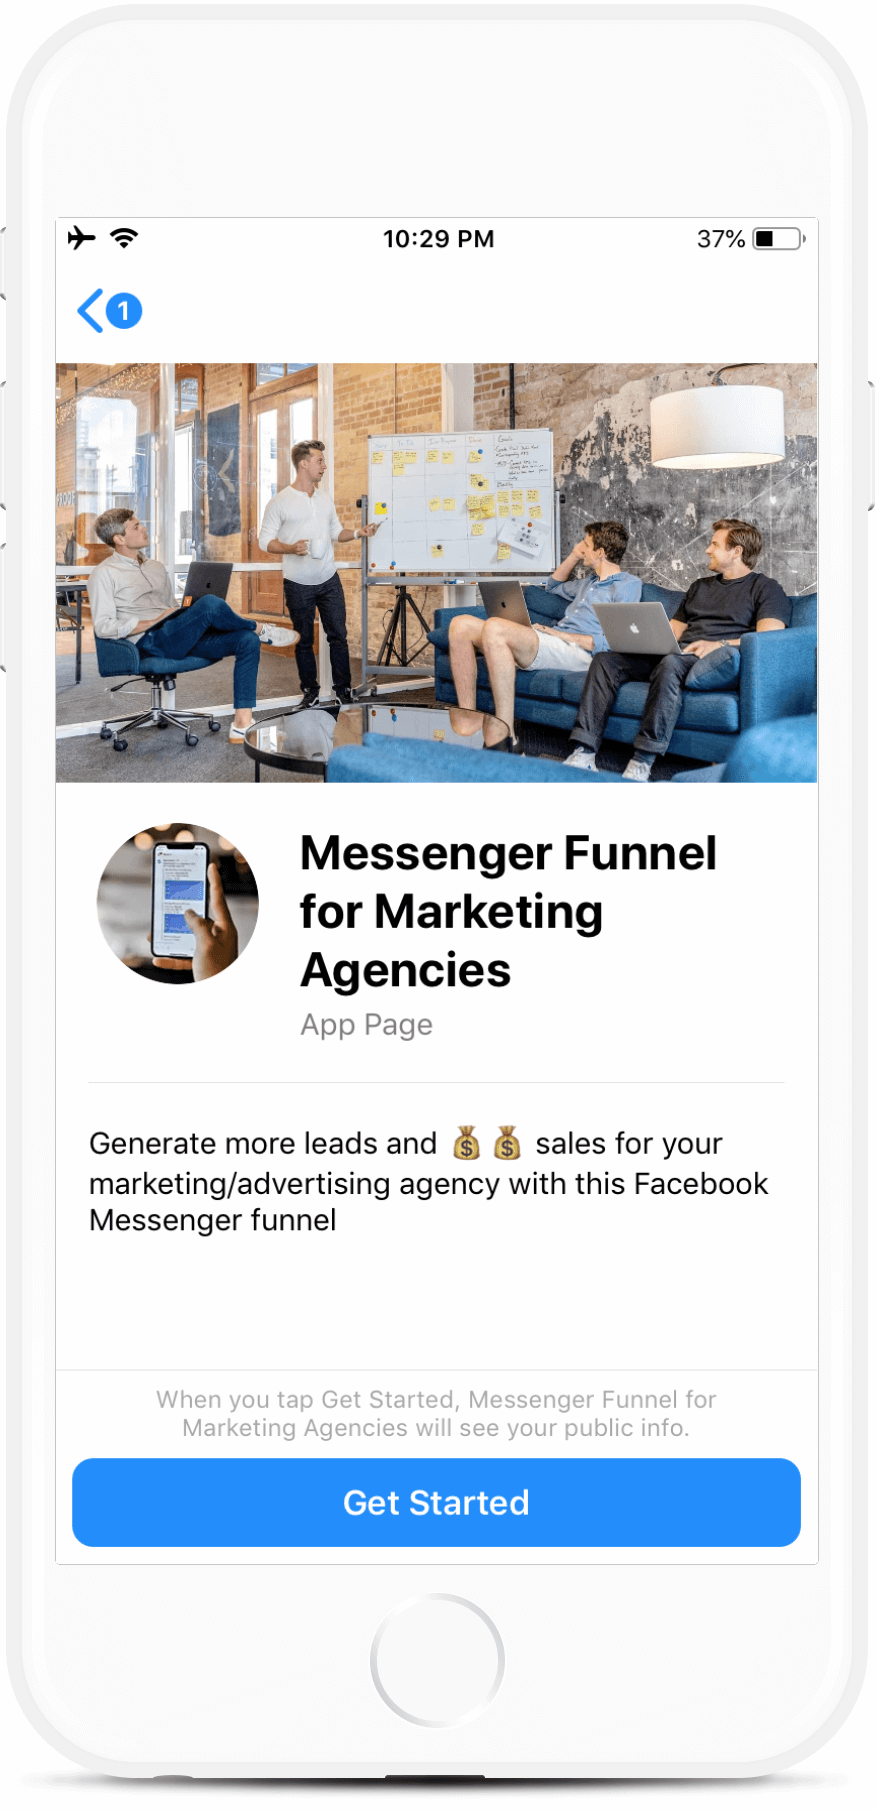 Messenger Marketing Agency Funnel for Messenger